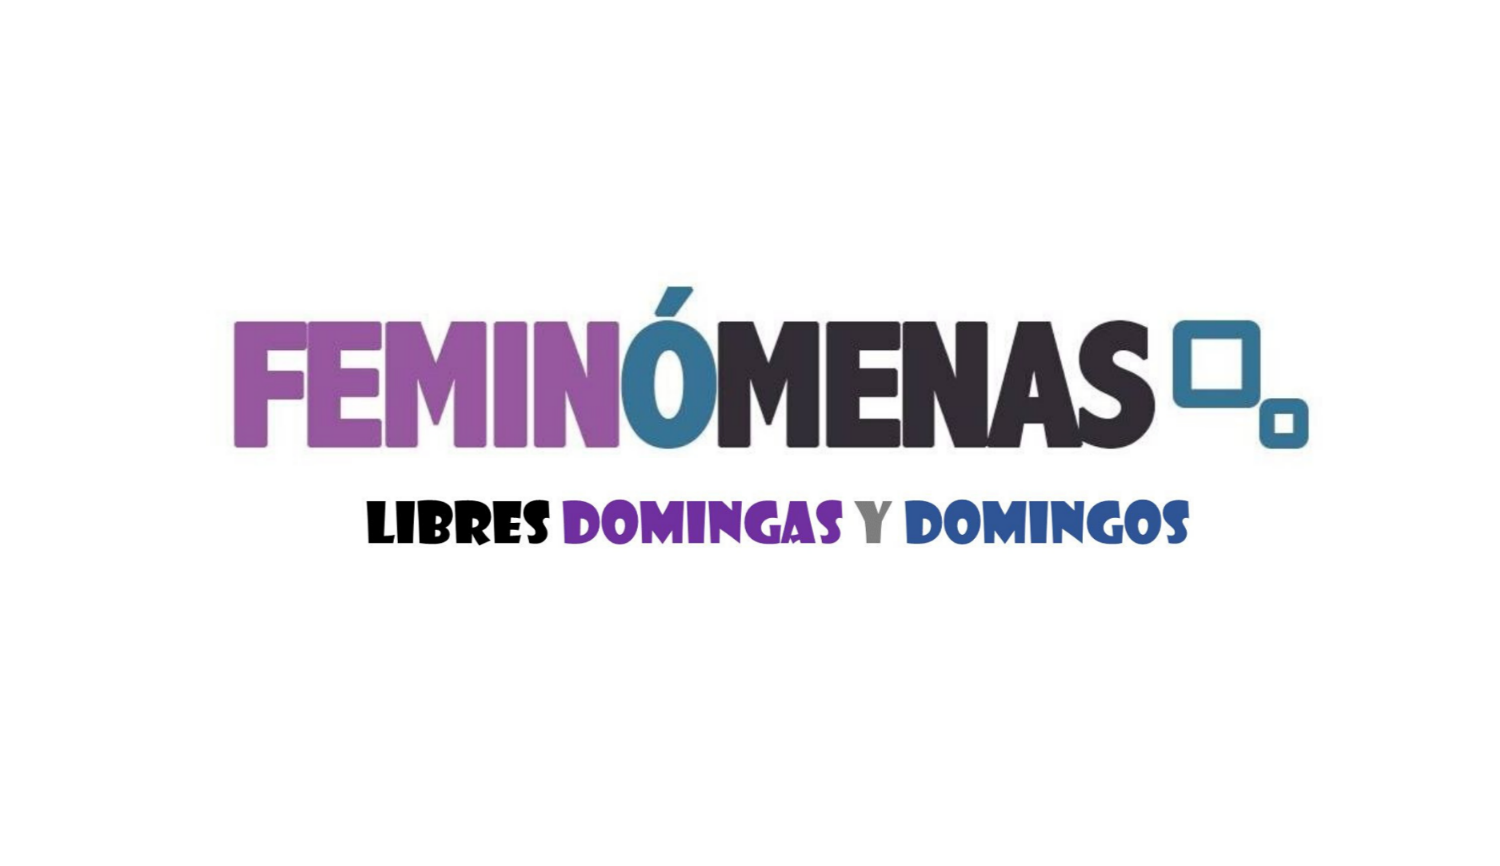 Feminomenas